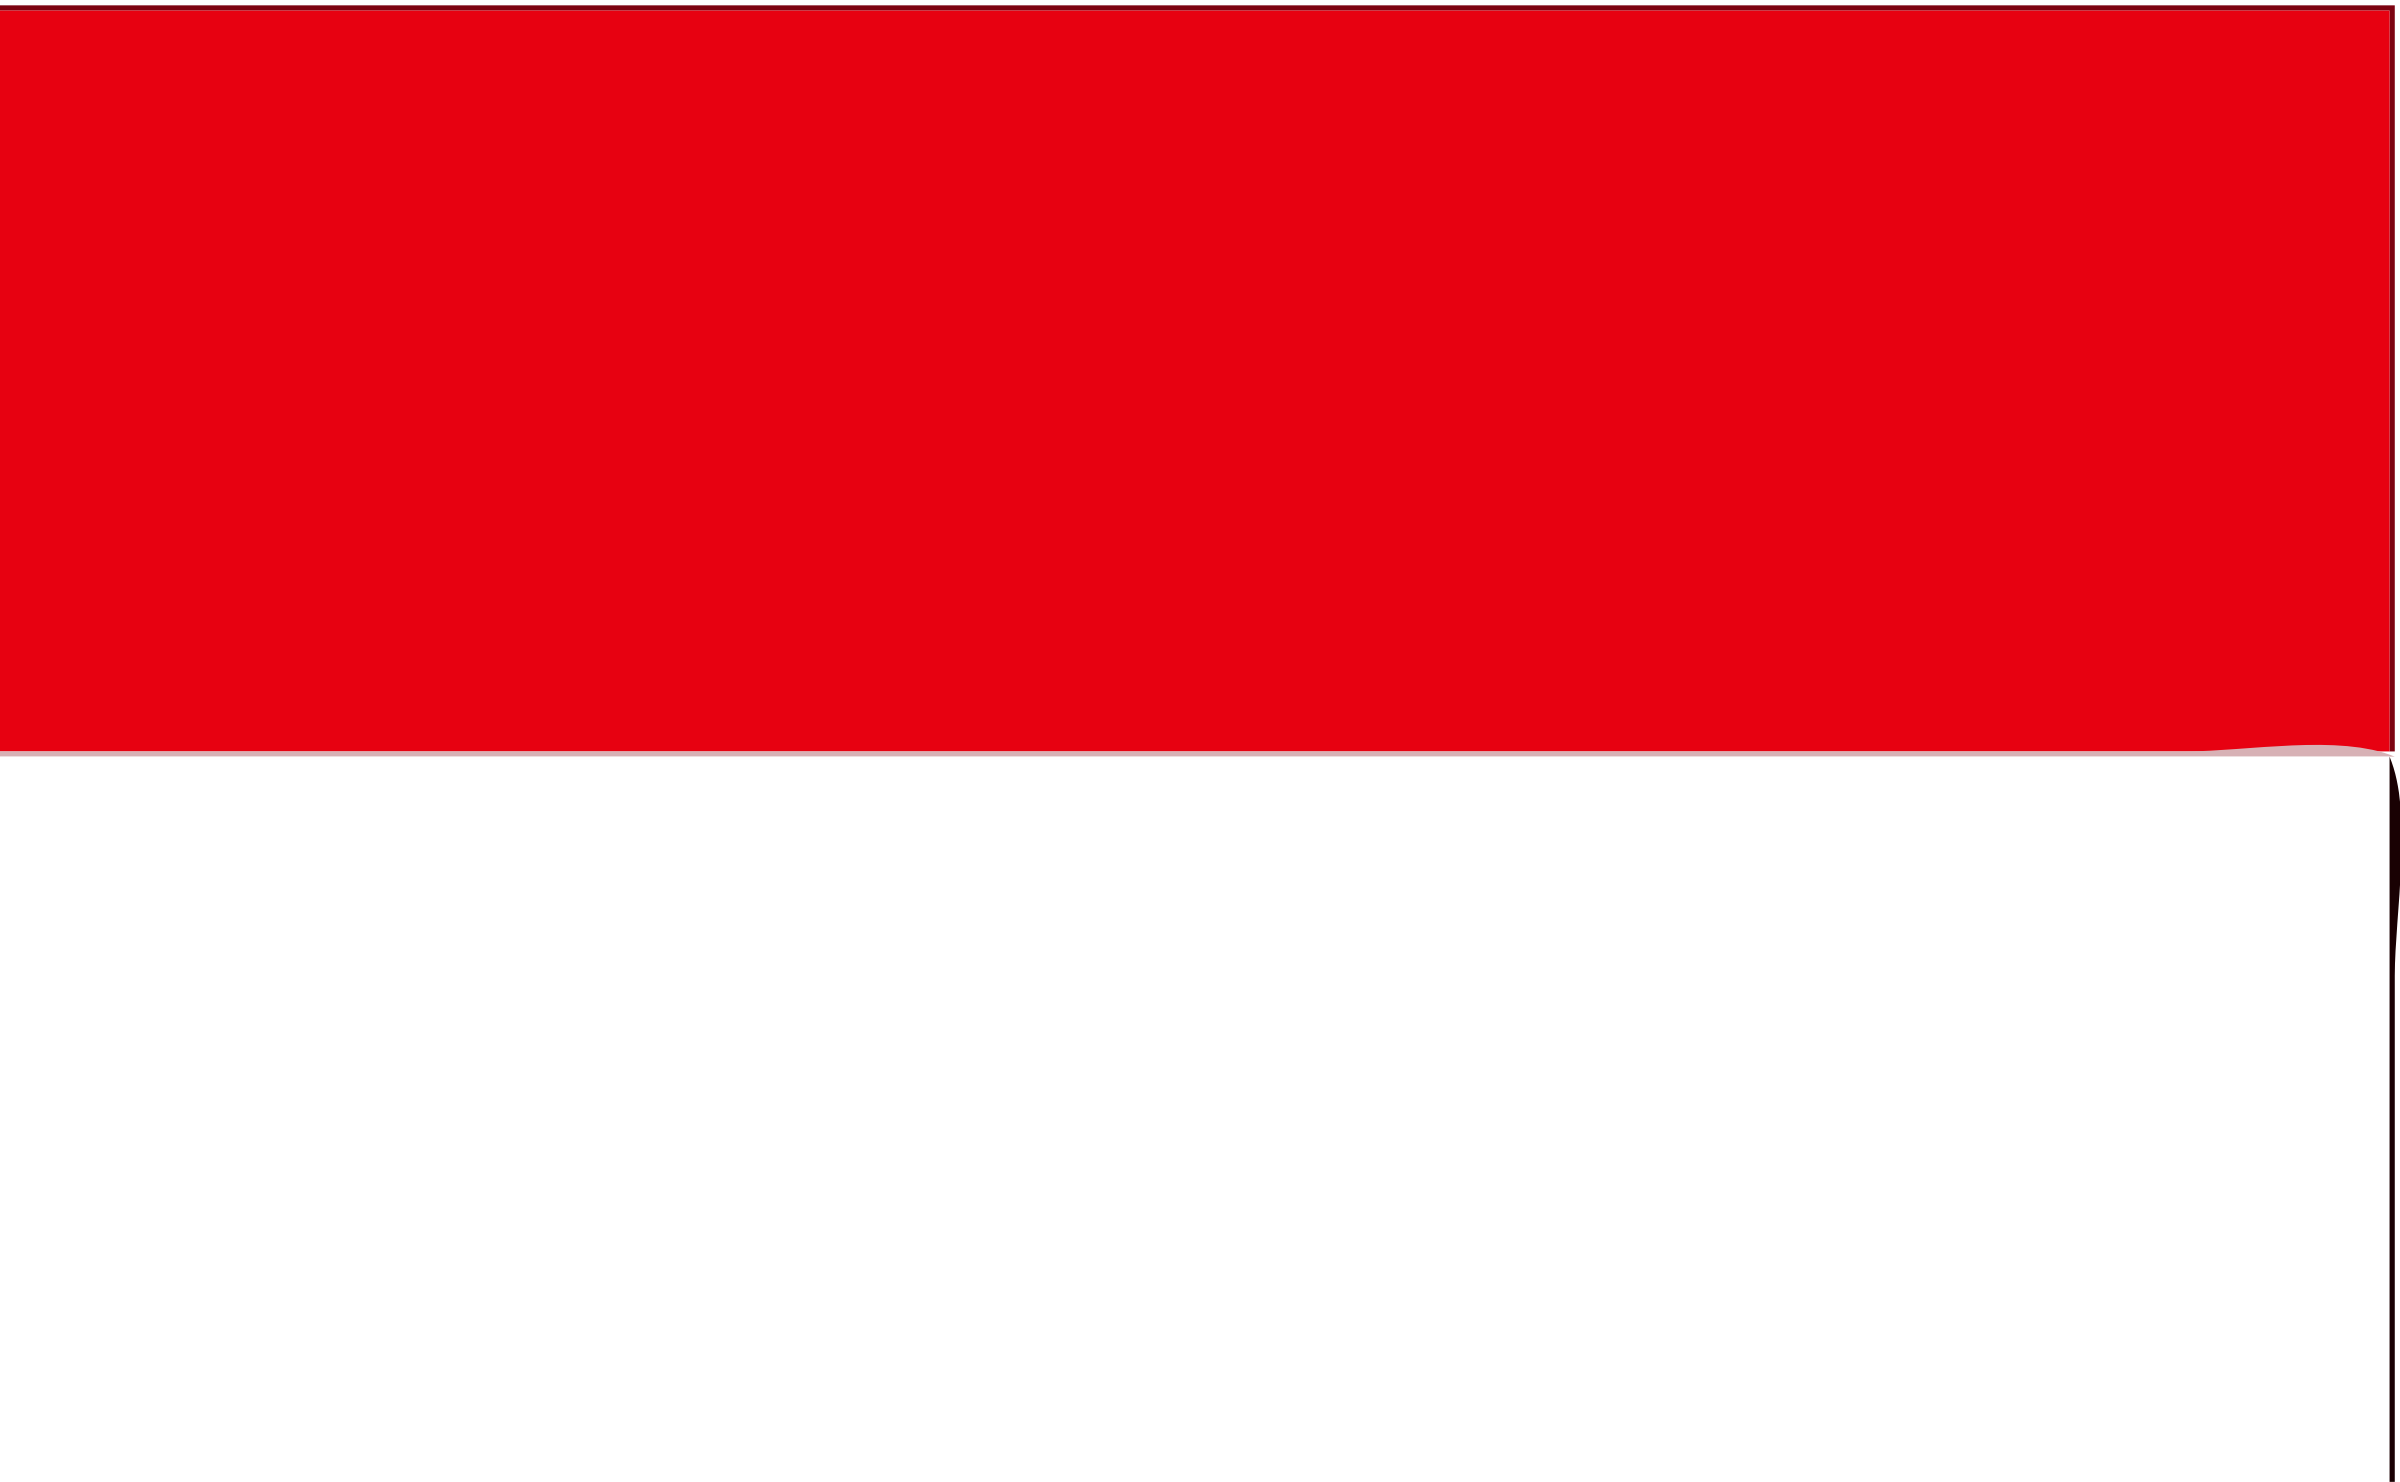 Indonesia flag by Joesph